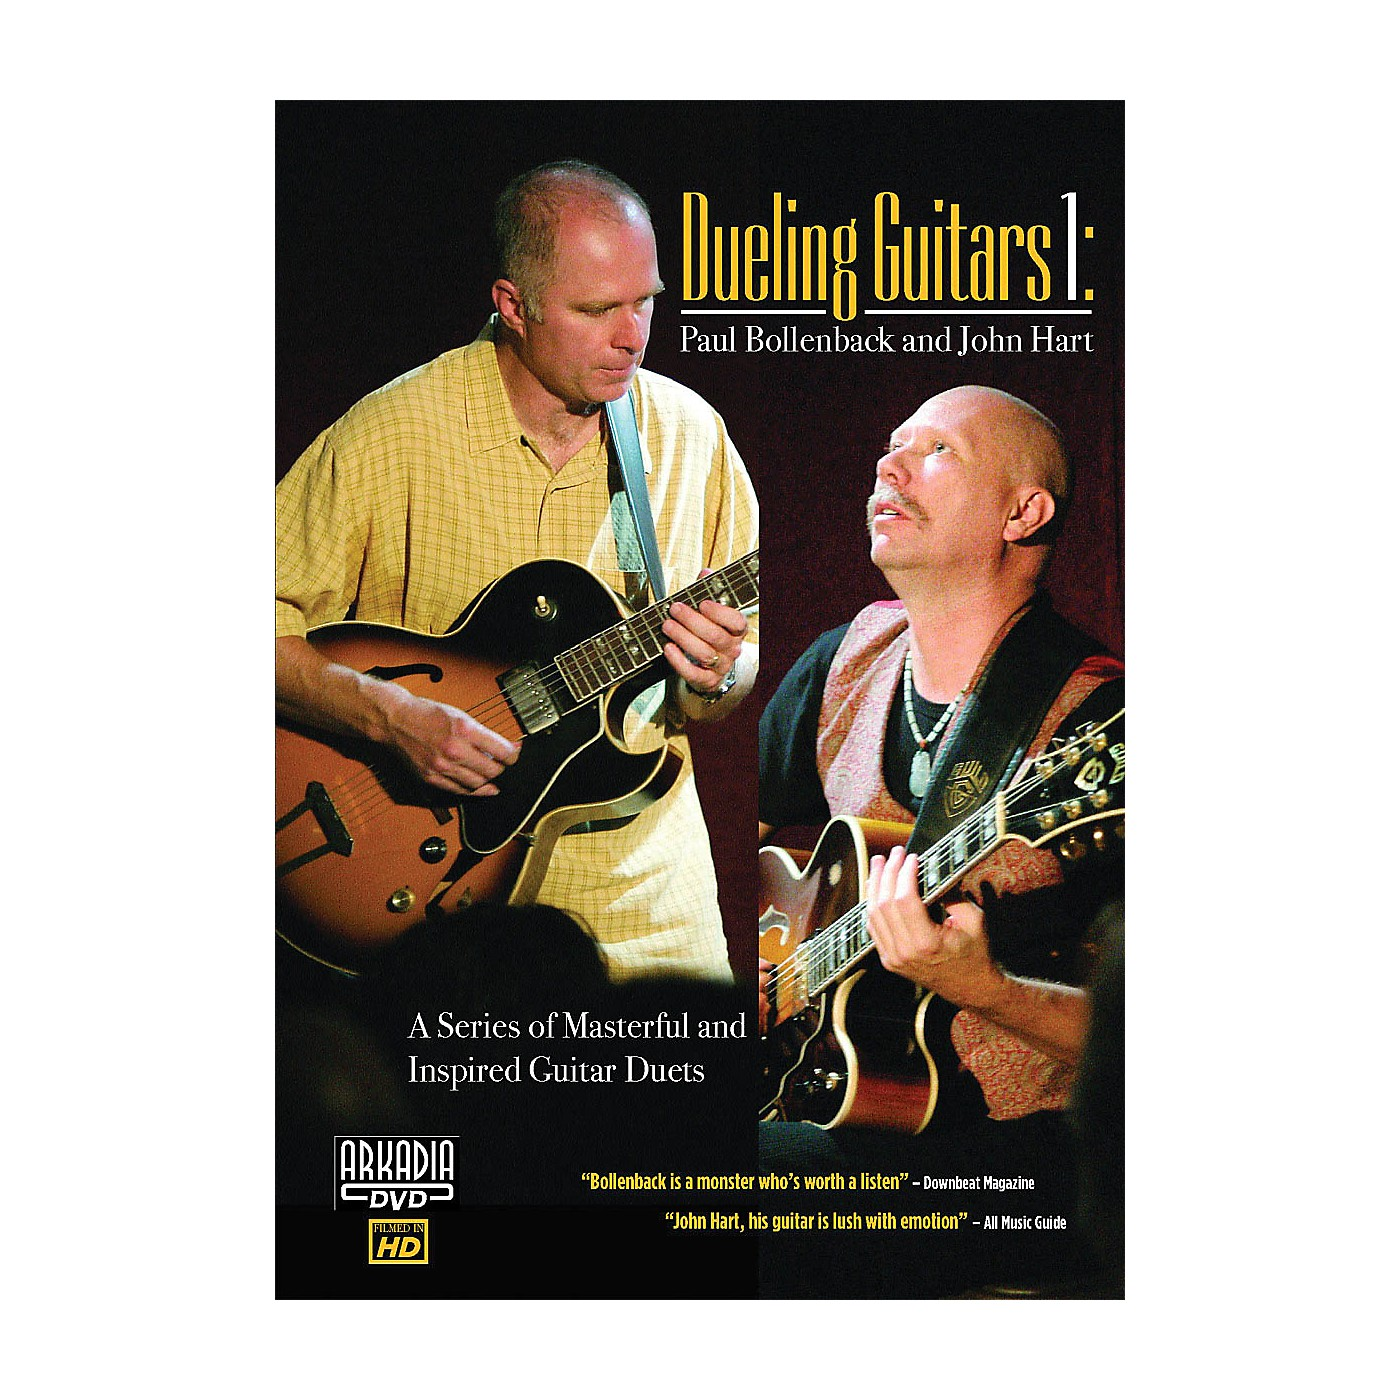 Hal Leonard Dueling Guitars 1 - Paul Bollenback & John Hart DVD Series DVD Performed by Paul Bollenback thumbnail